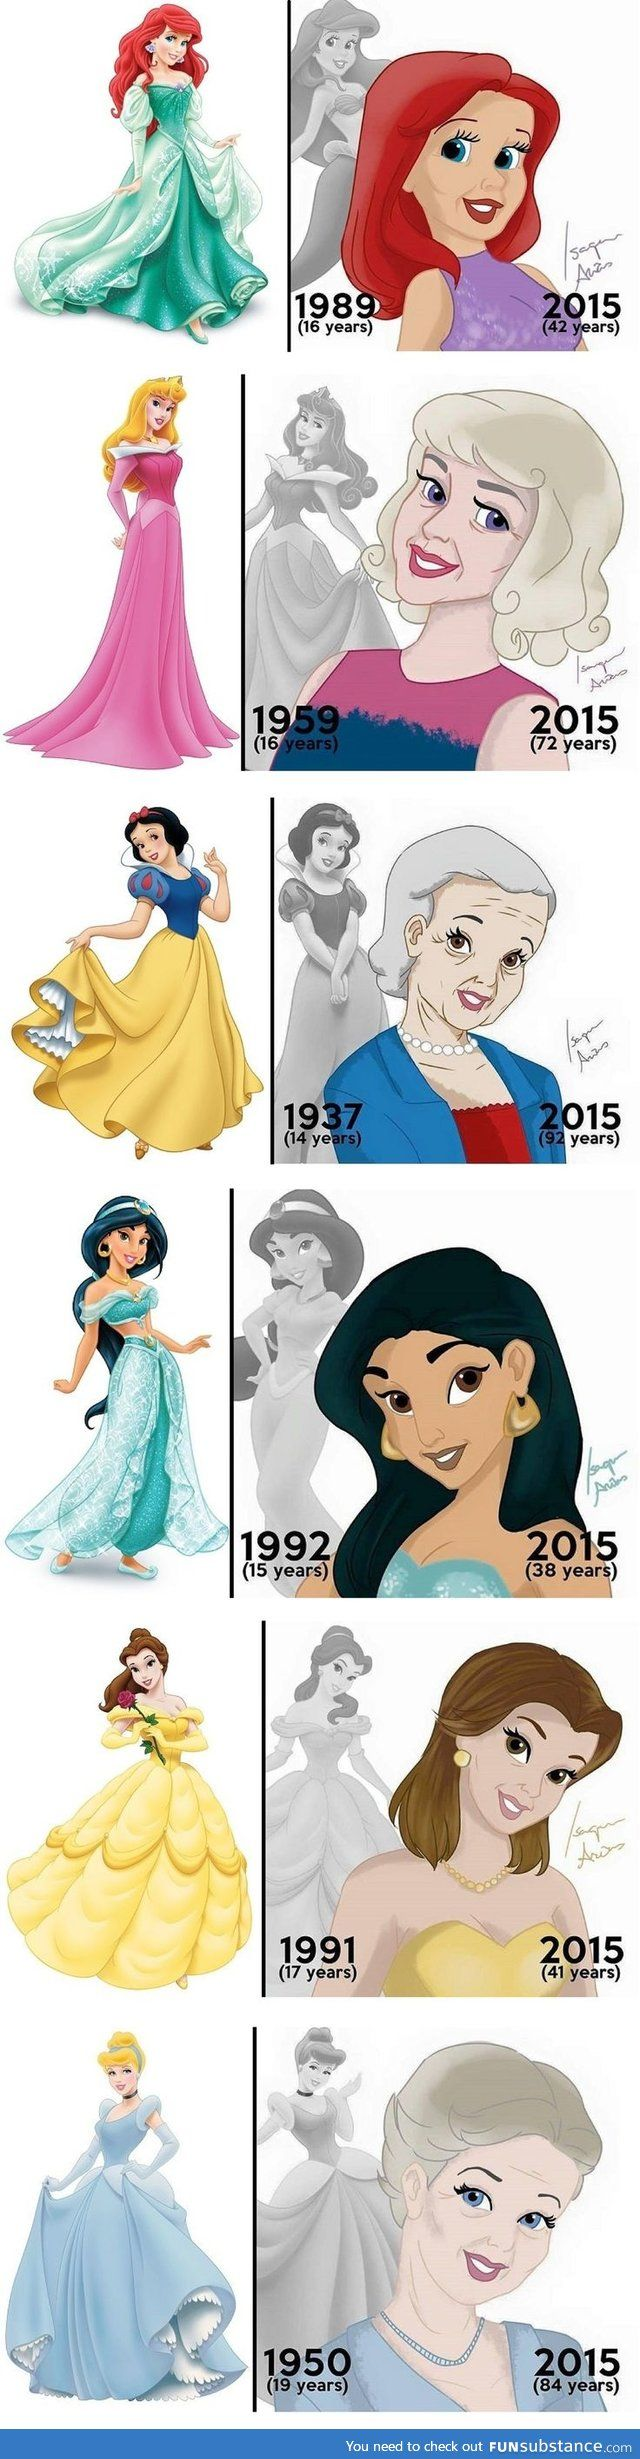 Disney princesses in 2015 - FunSubstance